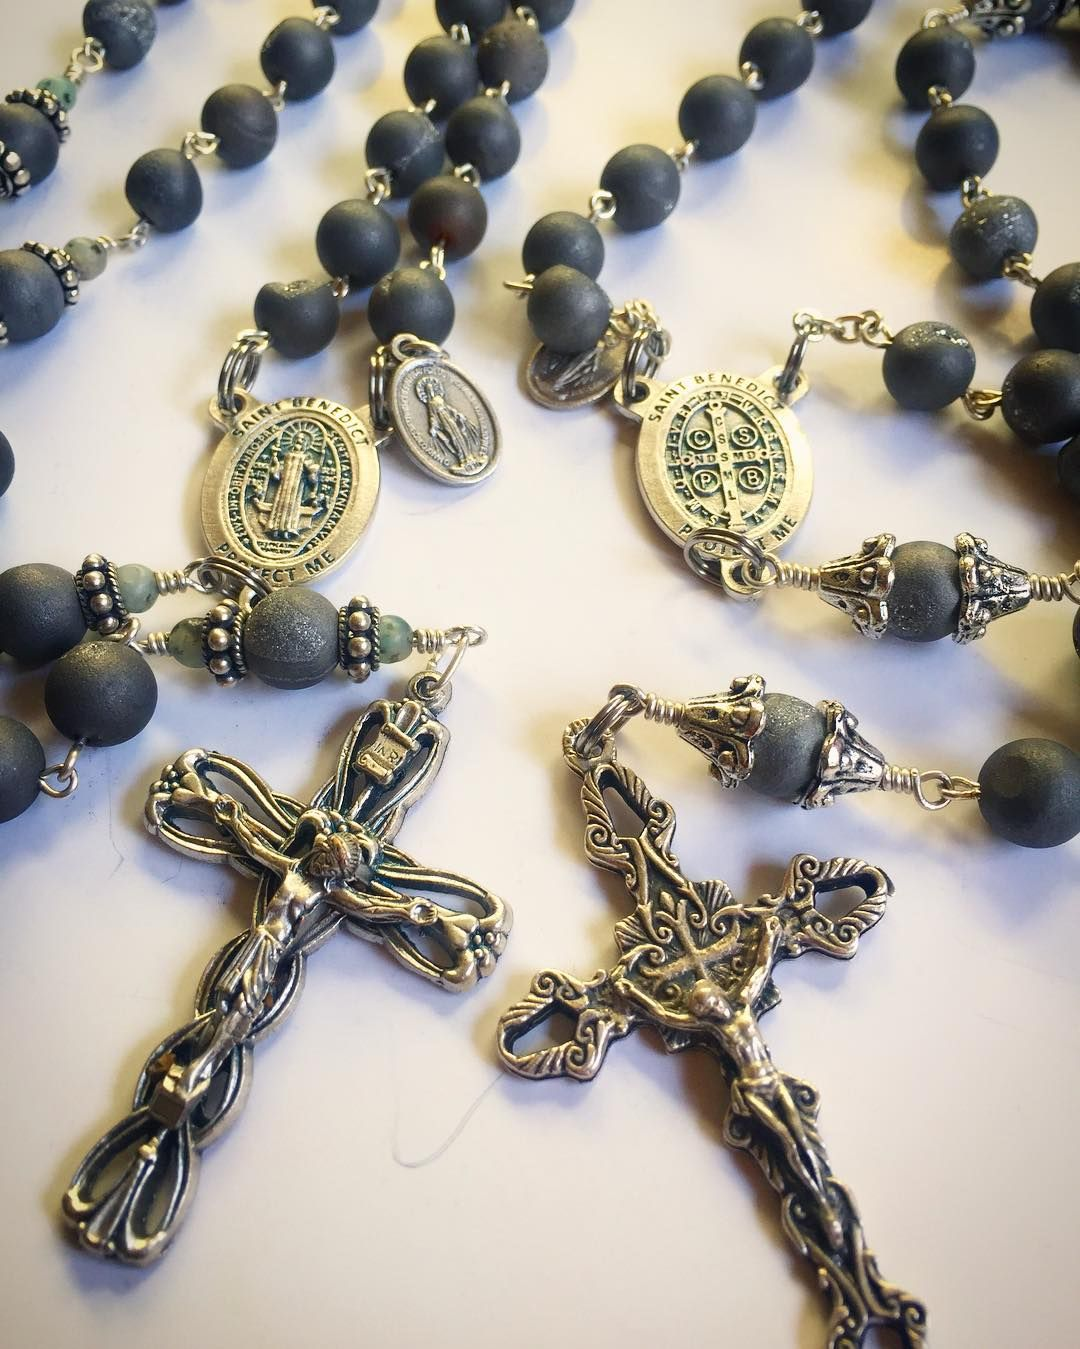 All who recite the Rosary are my sons and daughters and brothers and sisters of my only Son Jesus Christ... #VirginMary #To #StDominic #God #Lord #Jesus #JesusChrist #Catholic #Christian #Faith #Católico #Rosario #Blessed #HolySpirit #Pray #Church #Spiritual #Dios #Baptism #Saints #Christ #Rosary #Bible #Religion #Mass #Grace #Divine #Mercy #Holy #Faith by ufo3_79